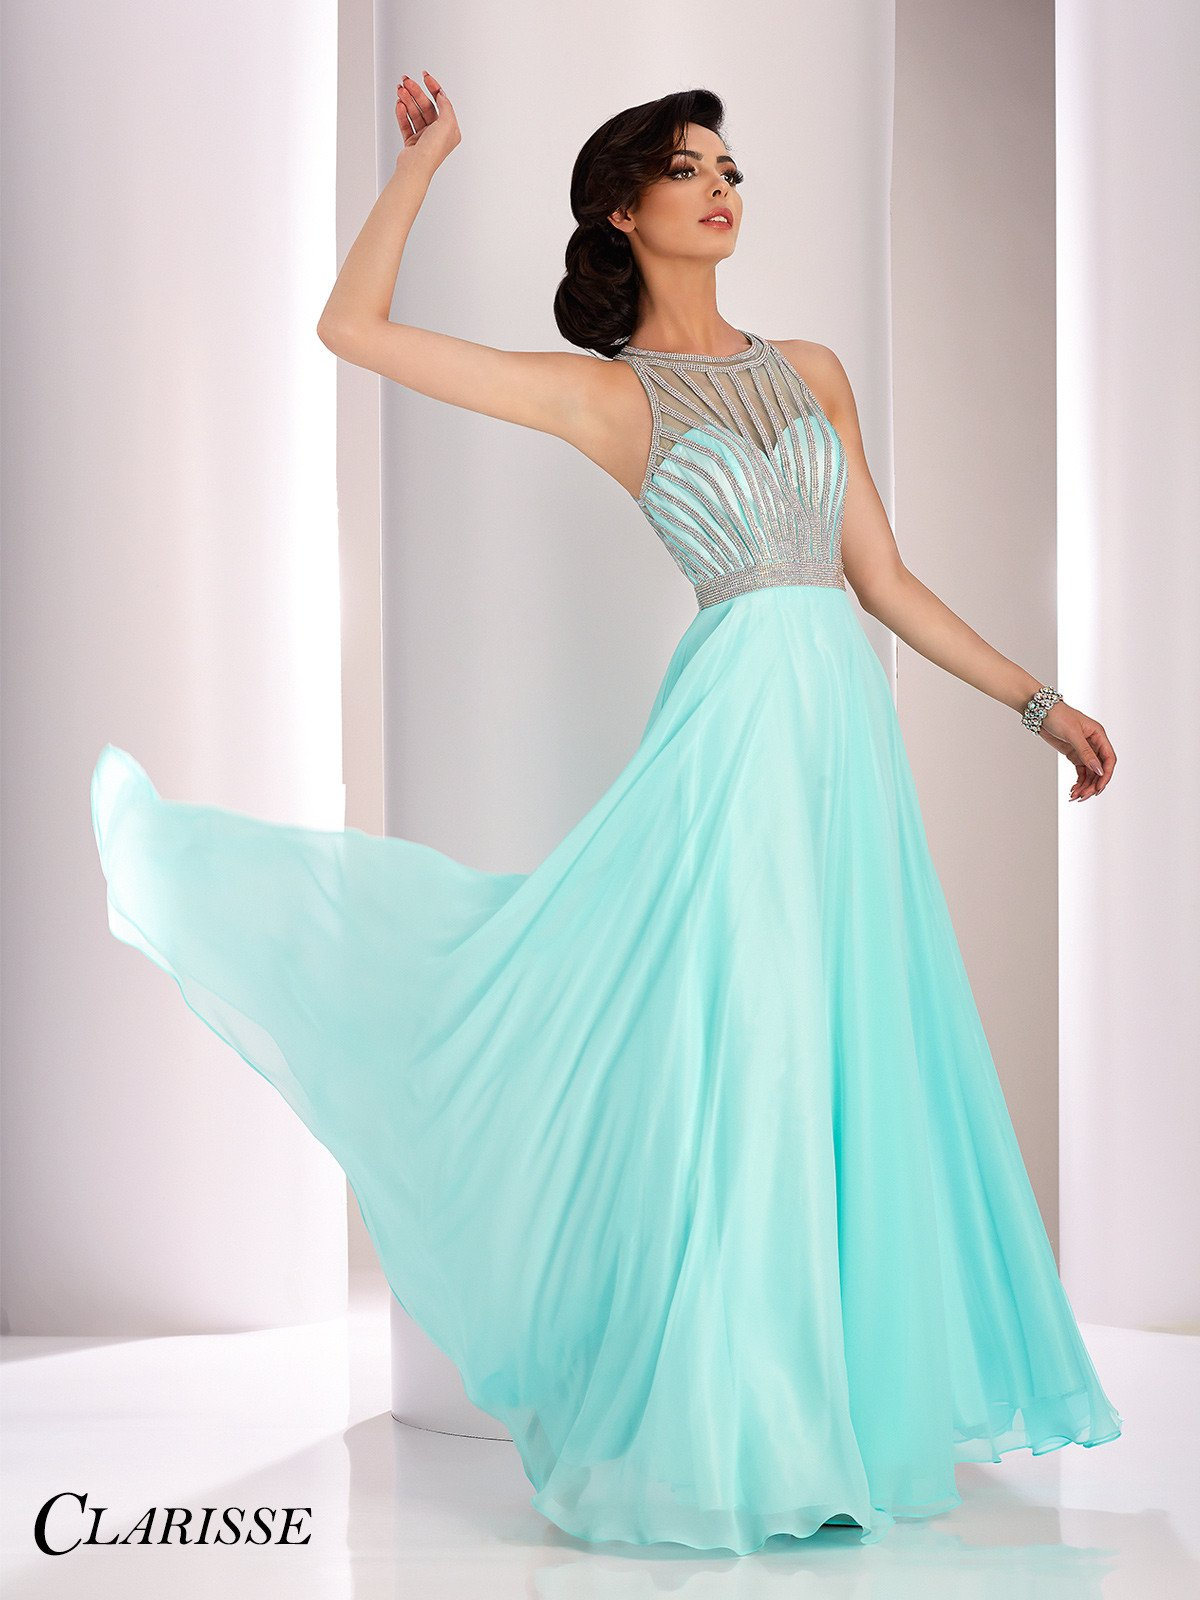 Clarisse Prom 3068 Seafoam Open Back Chiffon Prom Dress | Products ...